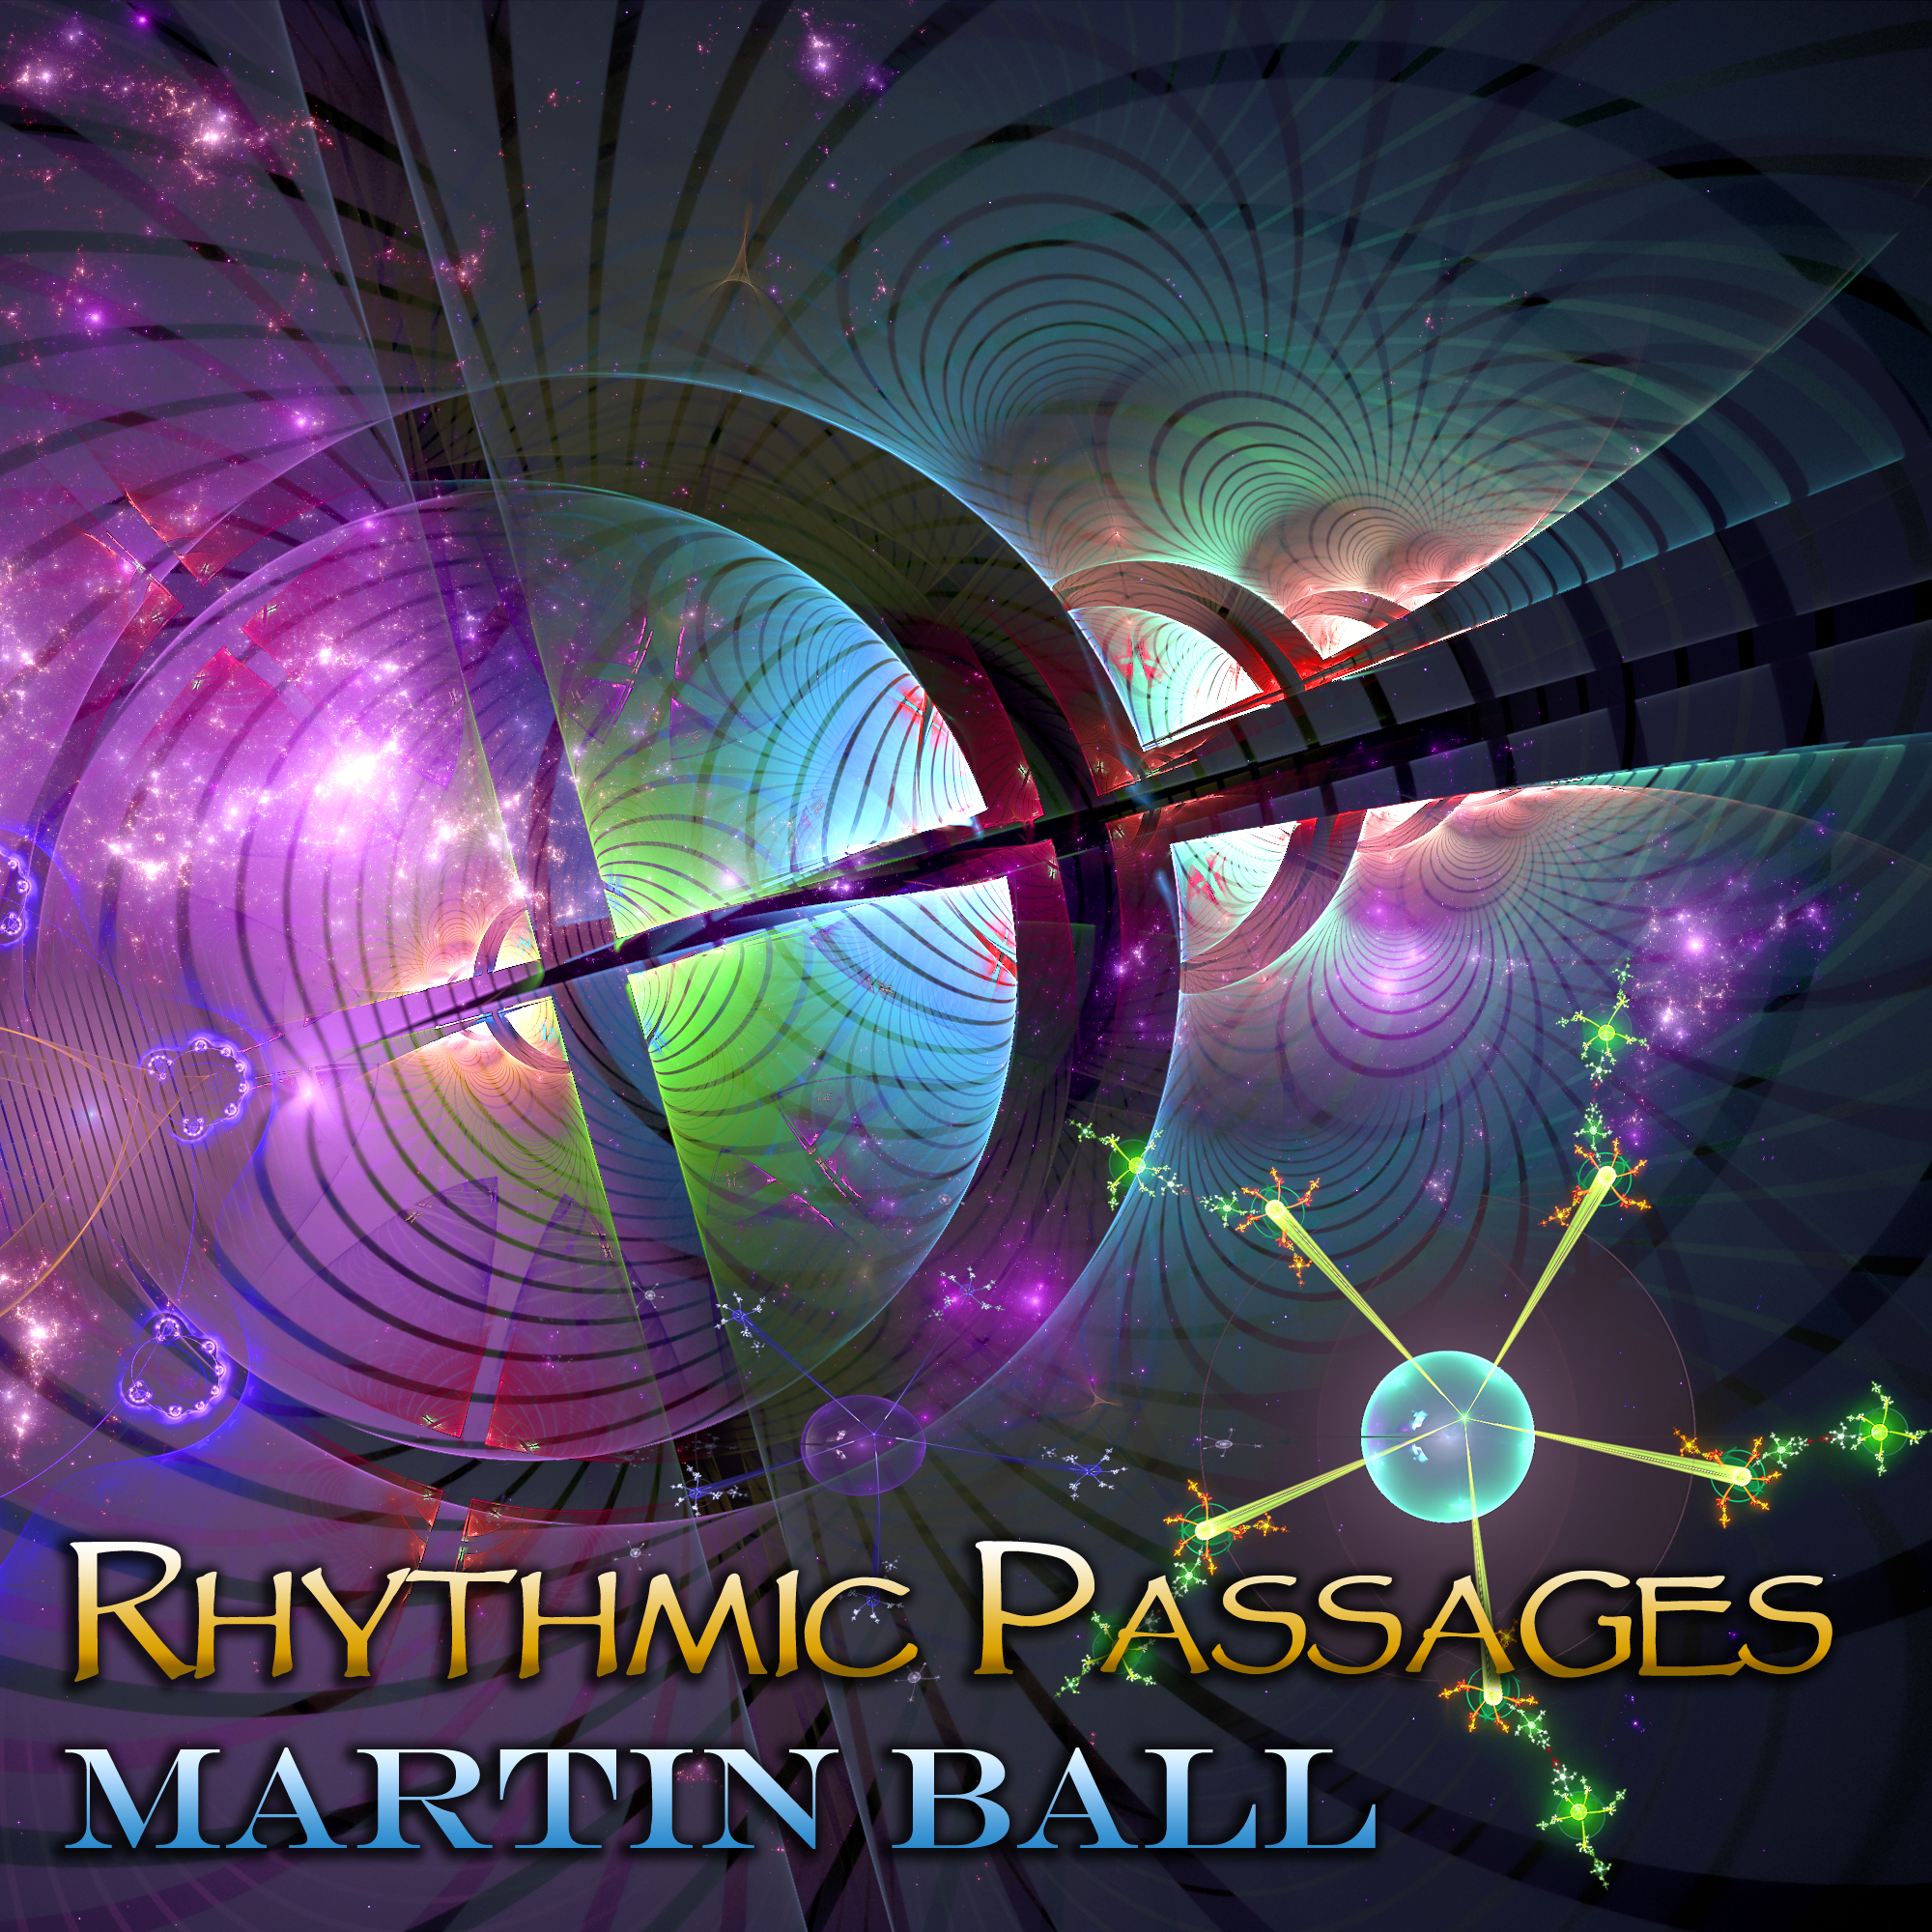 Rhythmic Passages